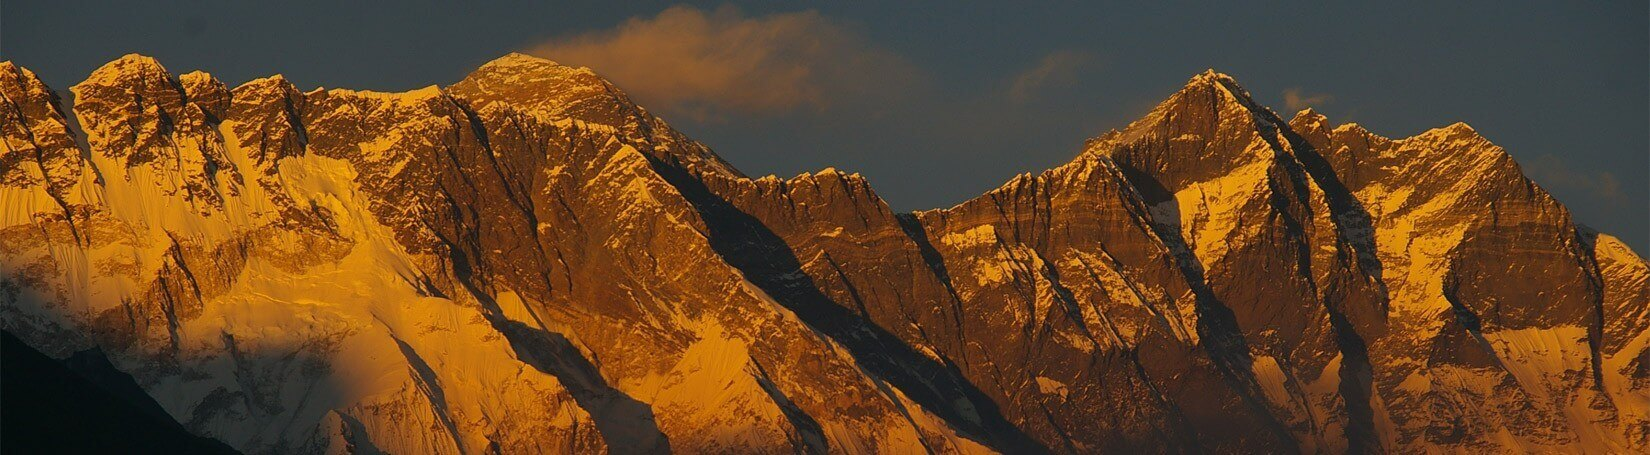 Mount Everest view at Sunrise